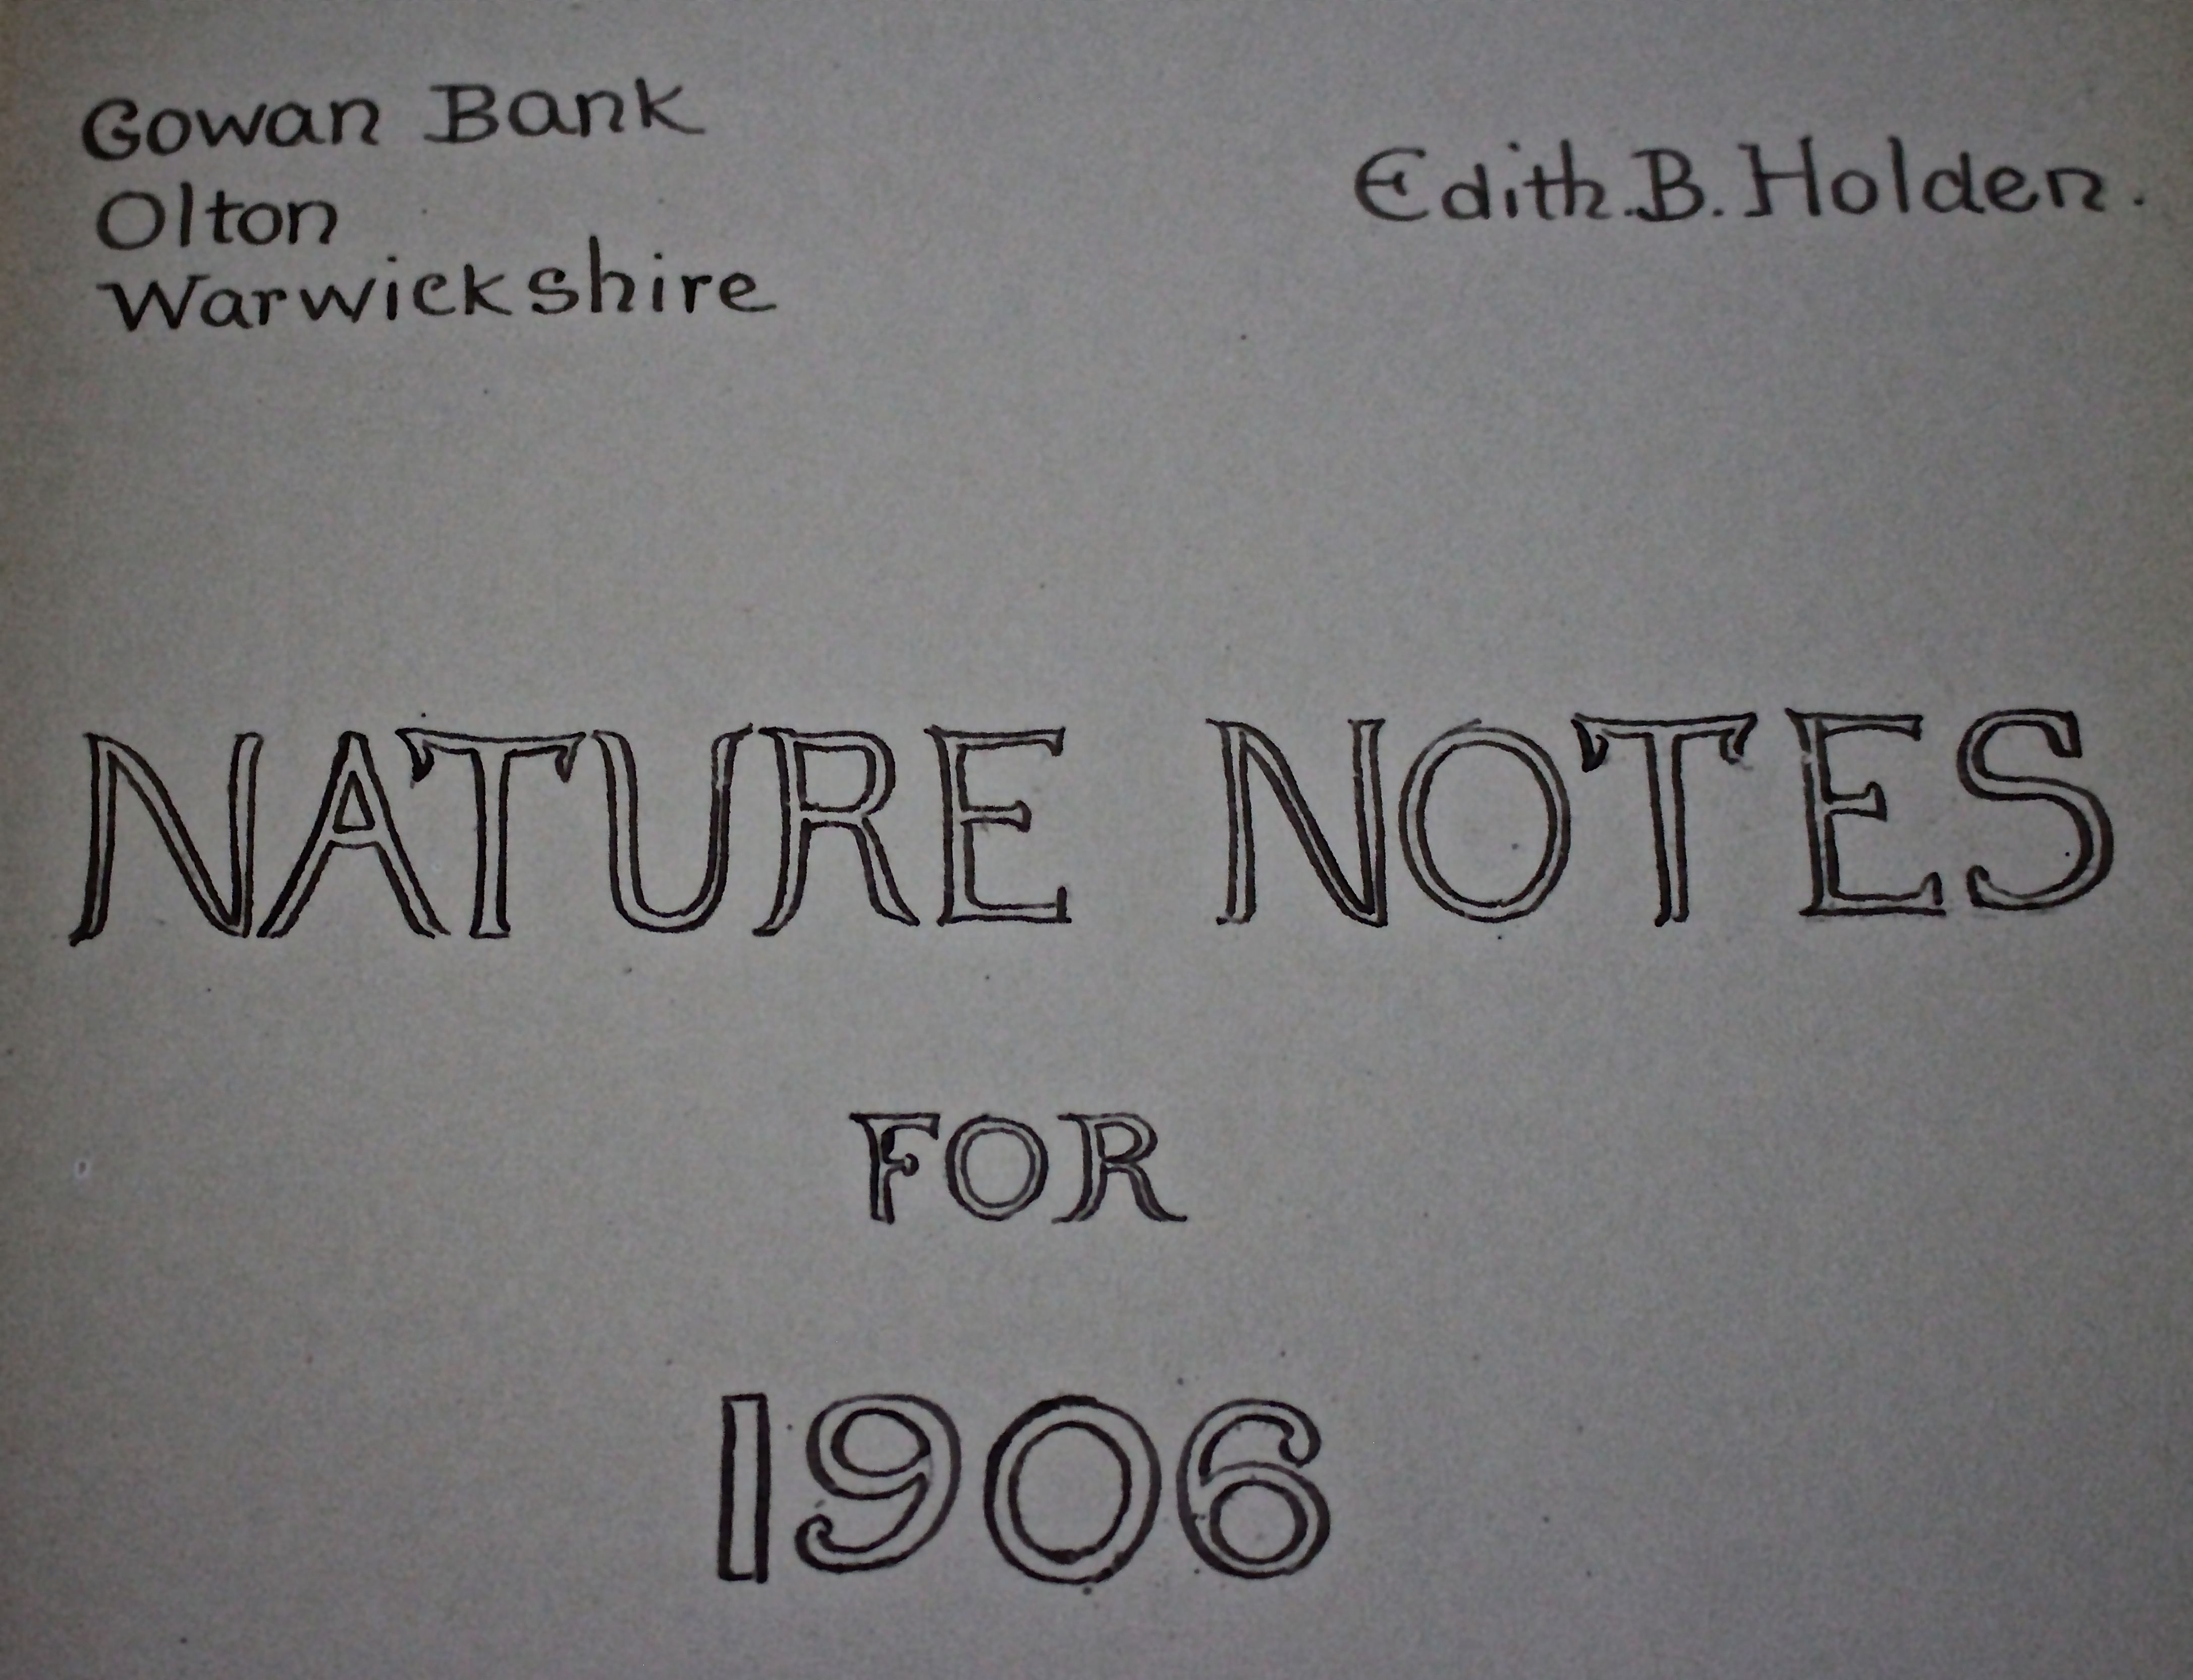 D-nature notes 1906